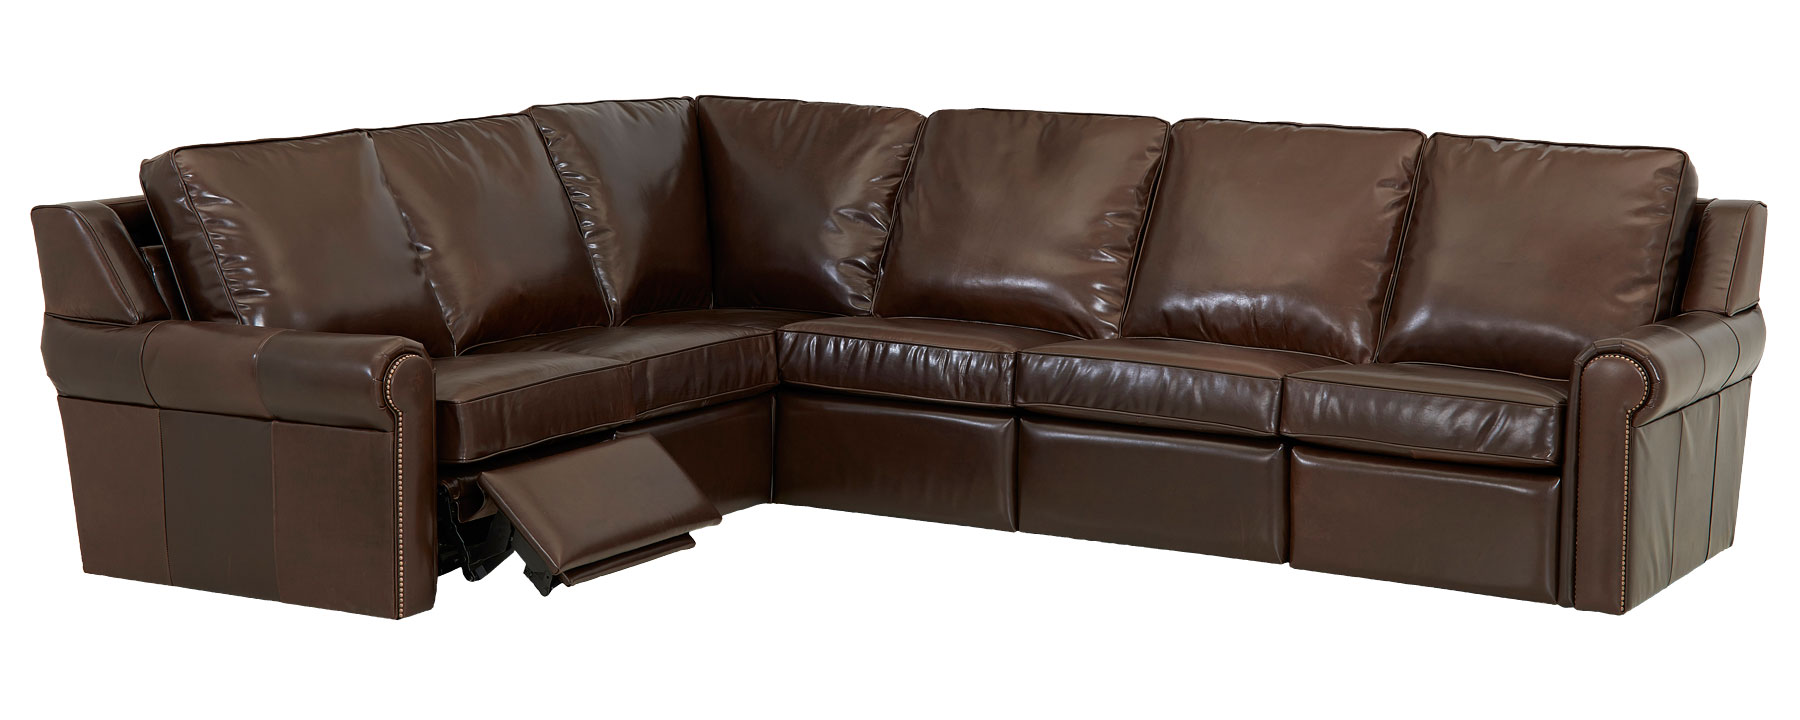 Thompkins leather electric power reclining sectional as for Build your own leather sectional sofa